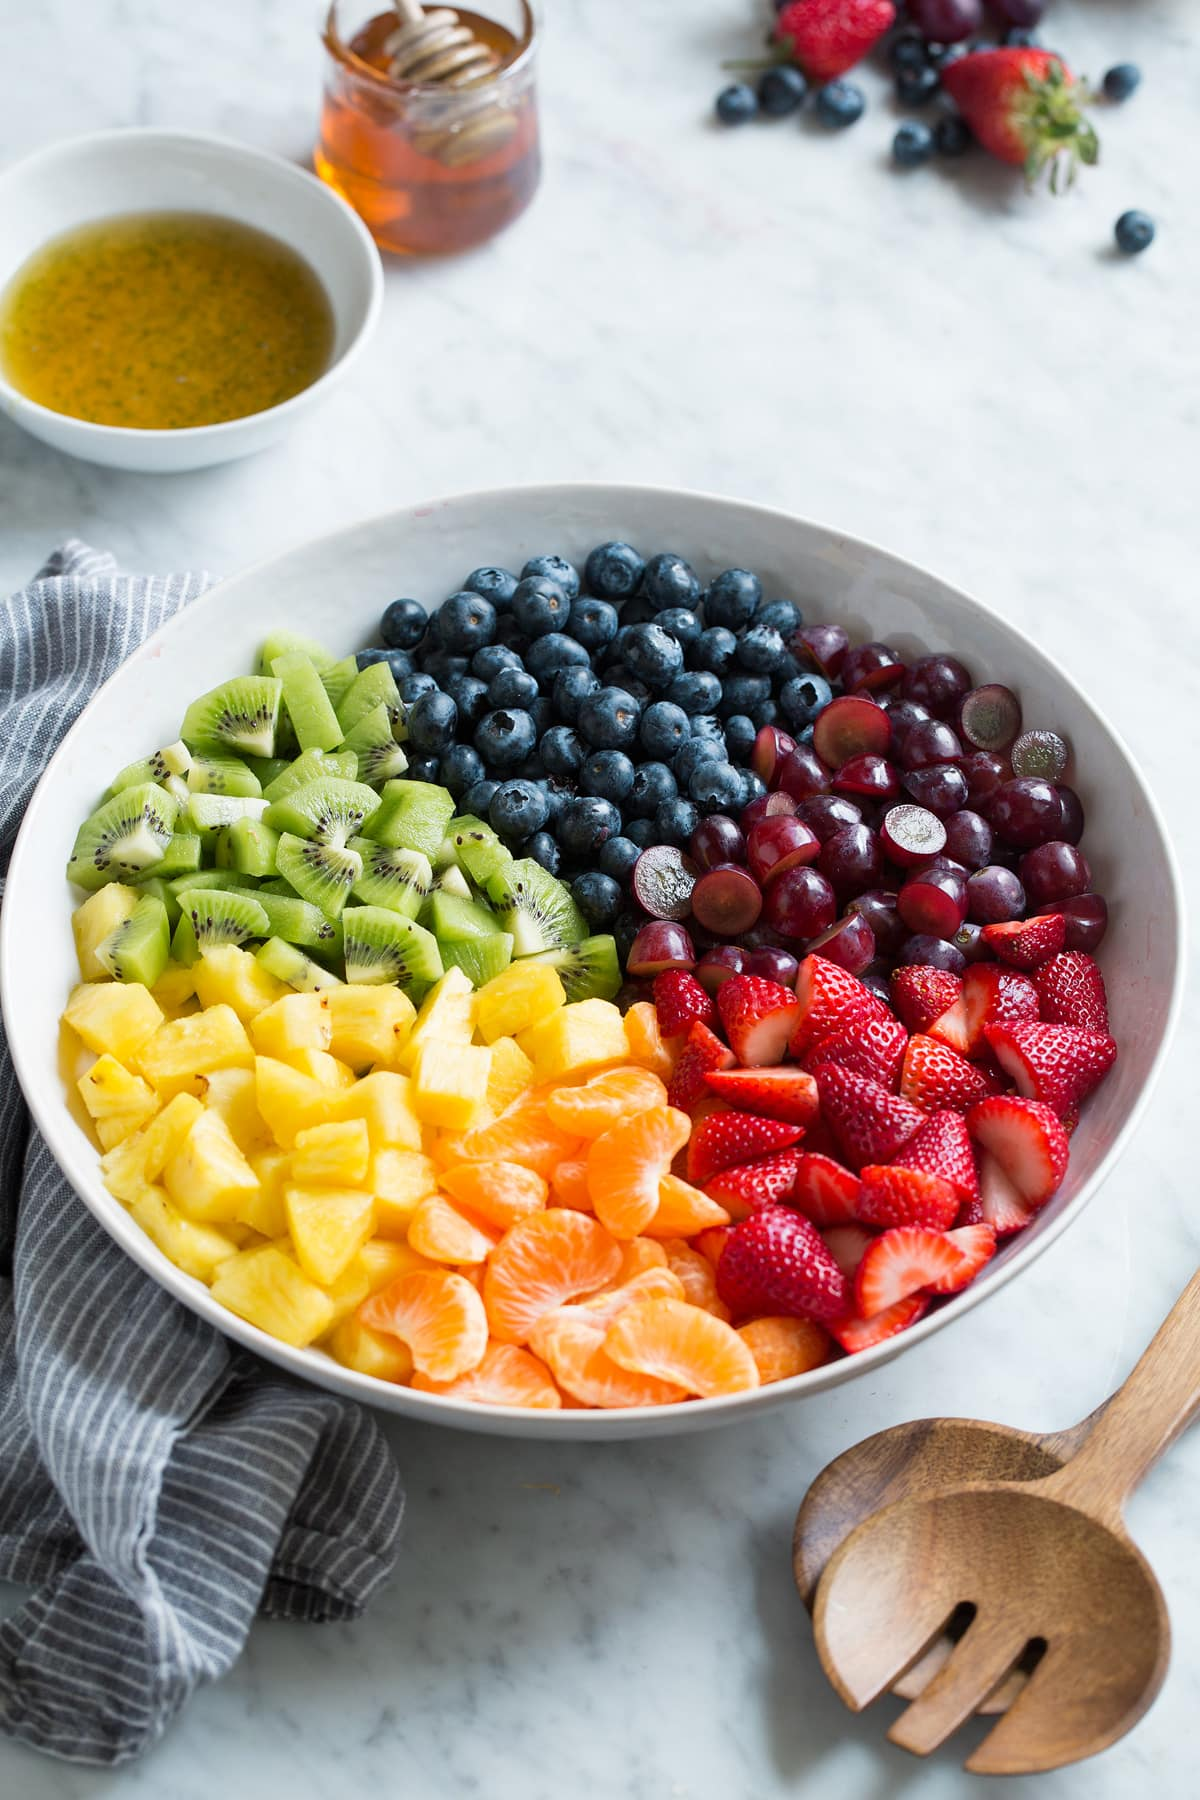 Fresh strawberries, mandarin oranges, pineapple, kiwi, blueberries, and grapes in sections in a large white serving bowl.